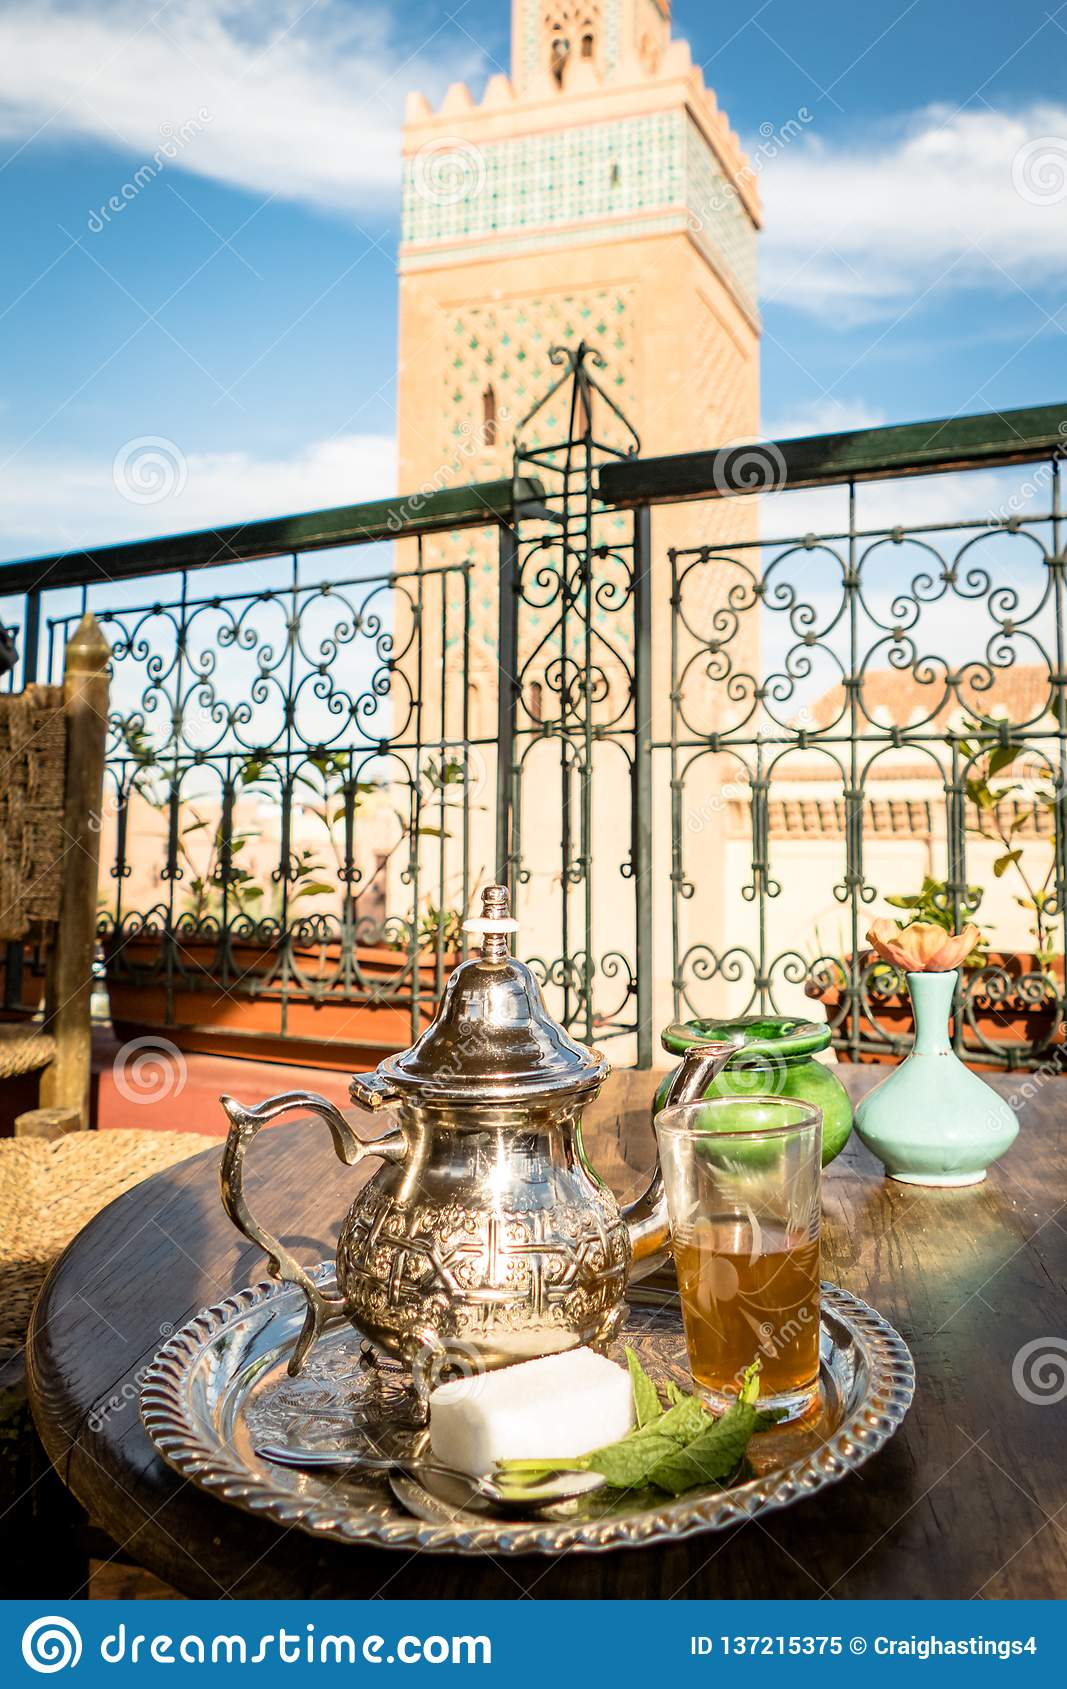 Image of Traditional Mint Tea Drink from Marrakesh Morocco